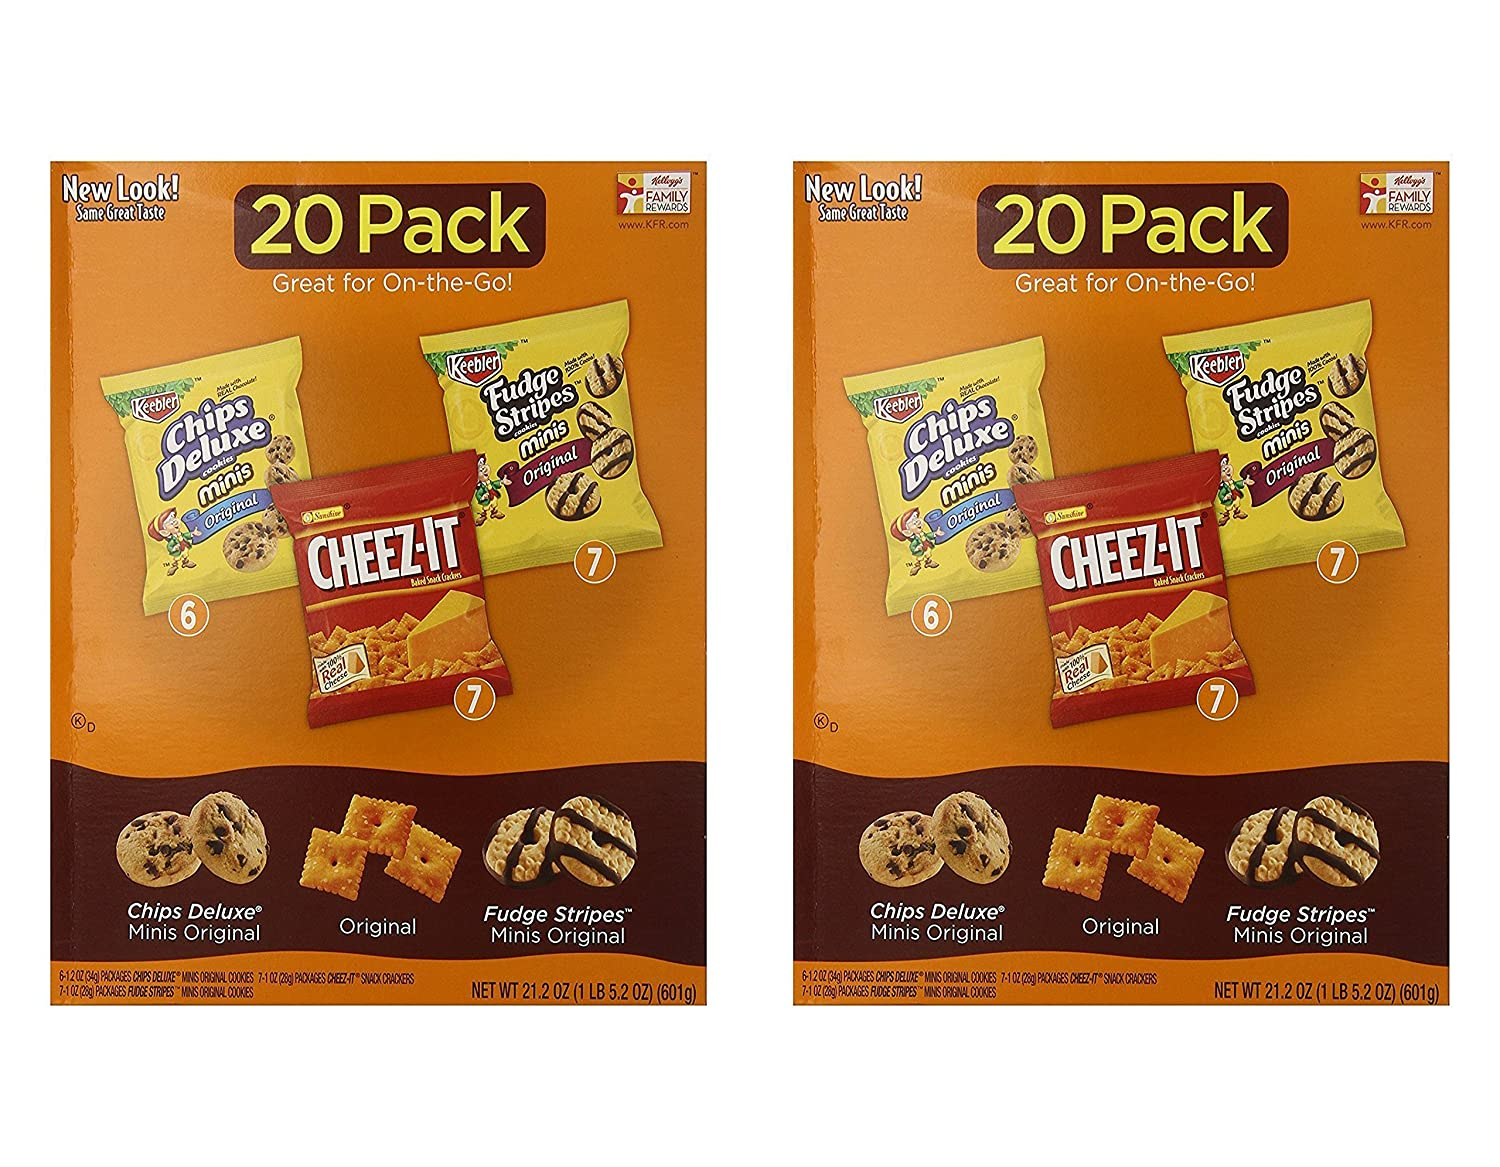 Amazon.com: Keebler Cookie and Cheez-It Variety Pack (20-Count ...